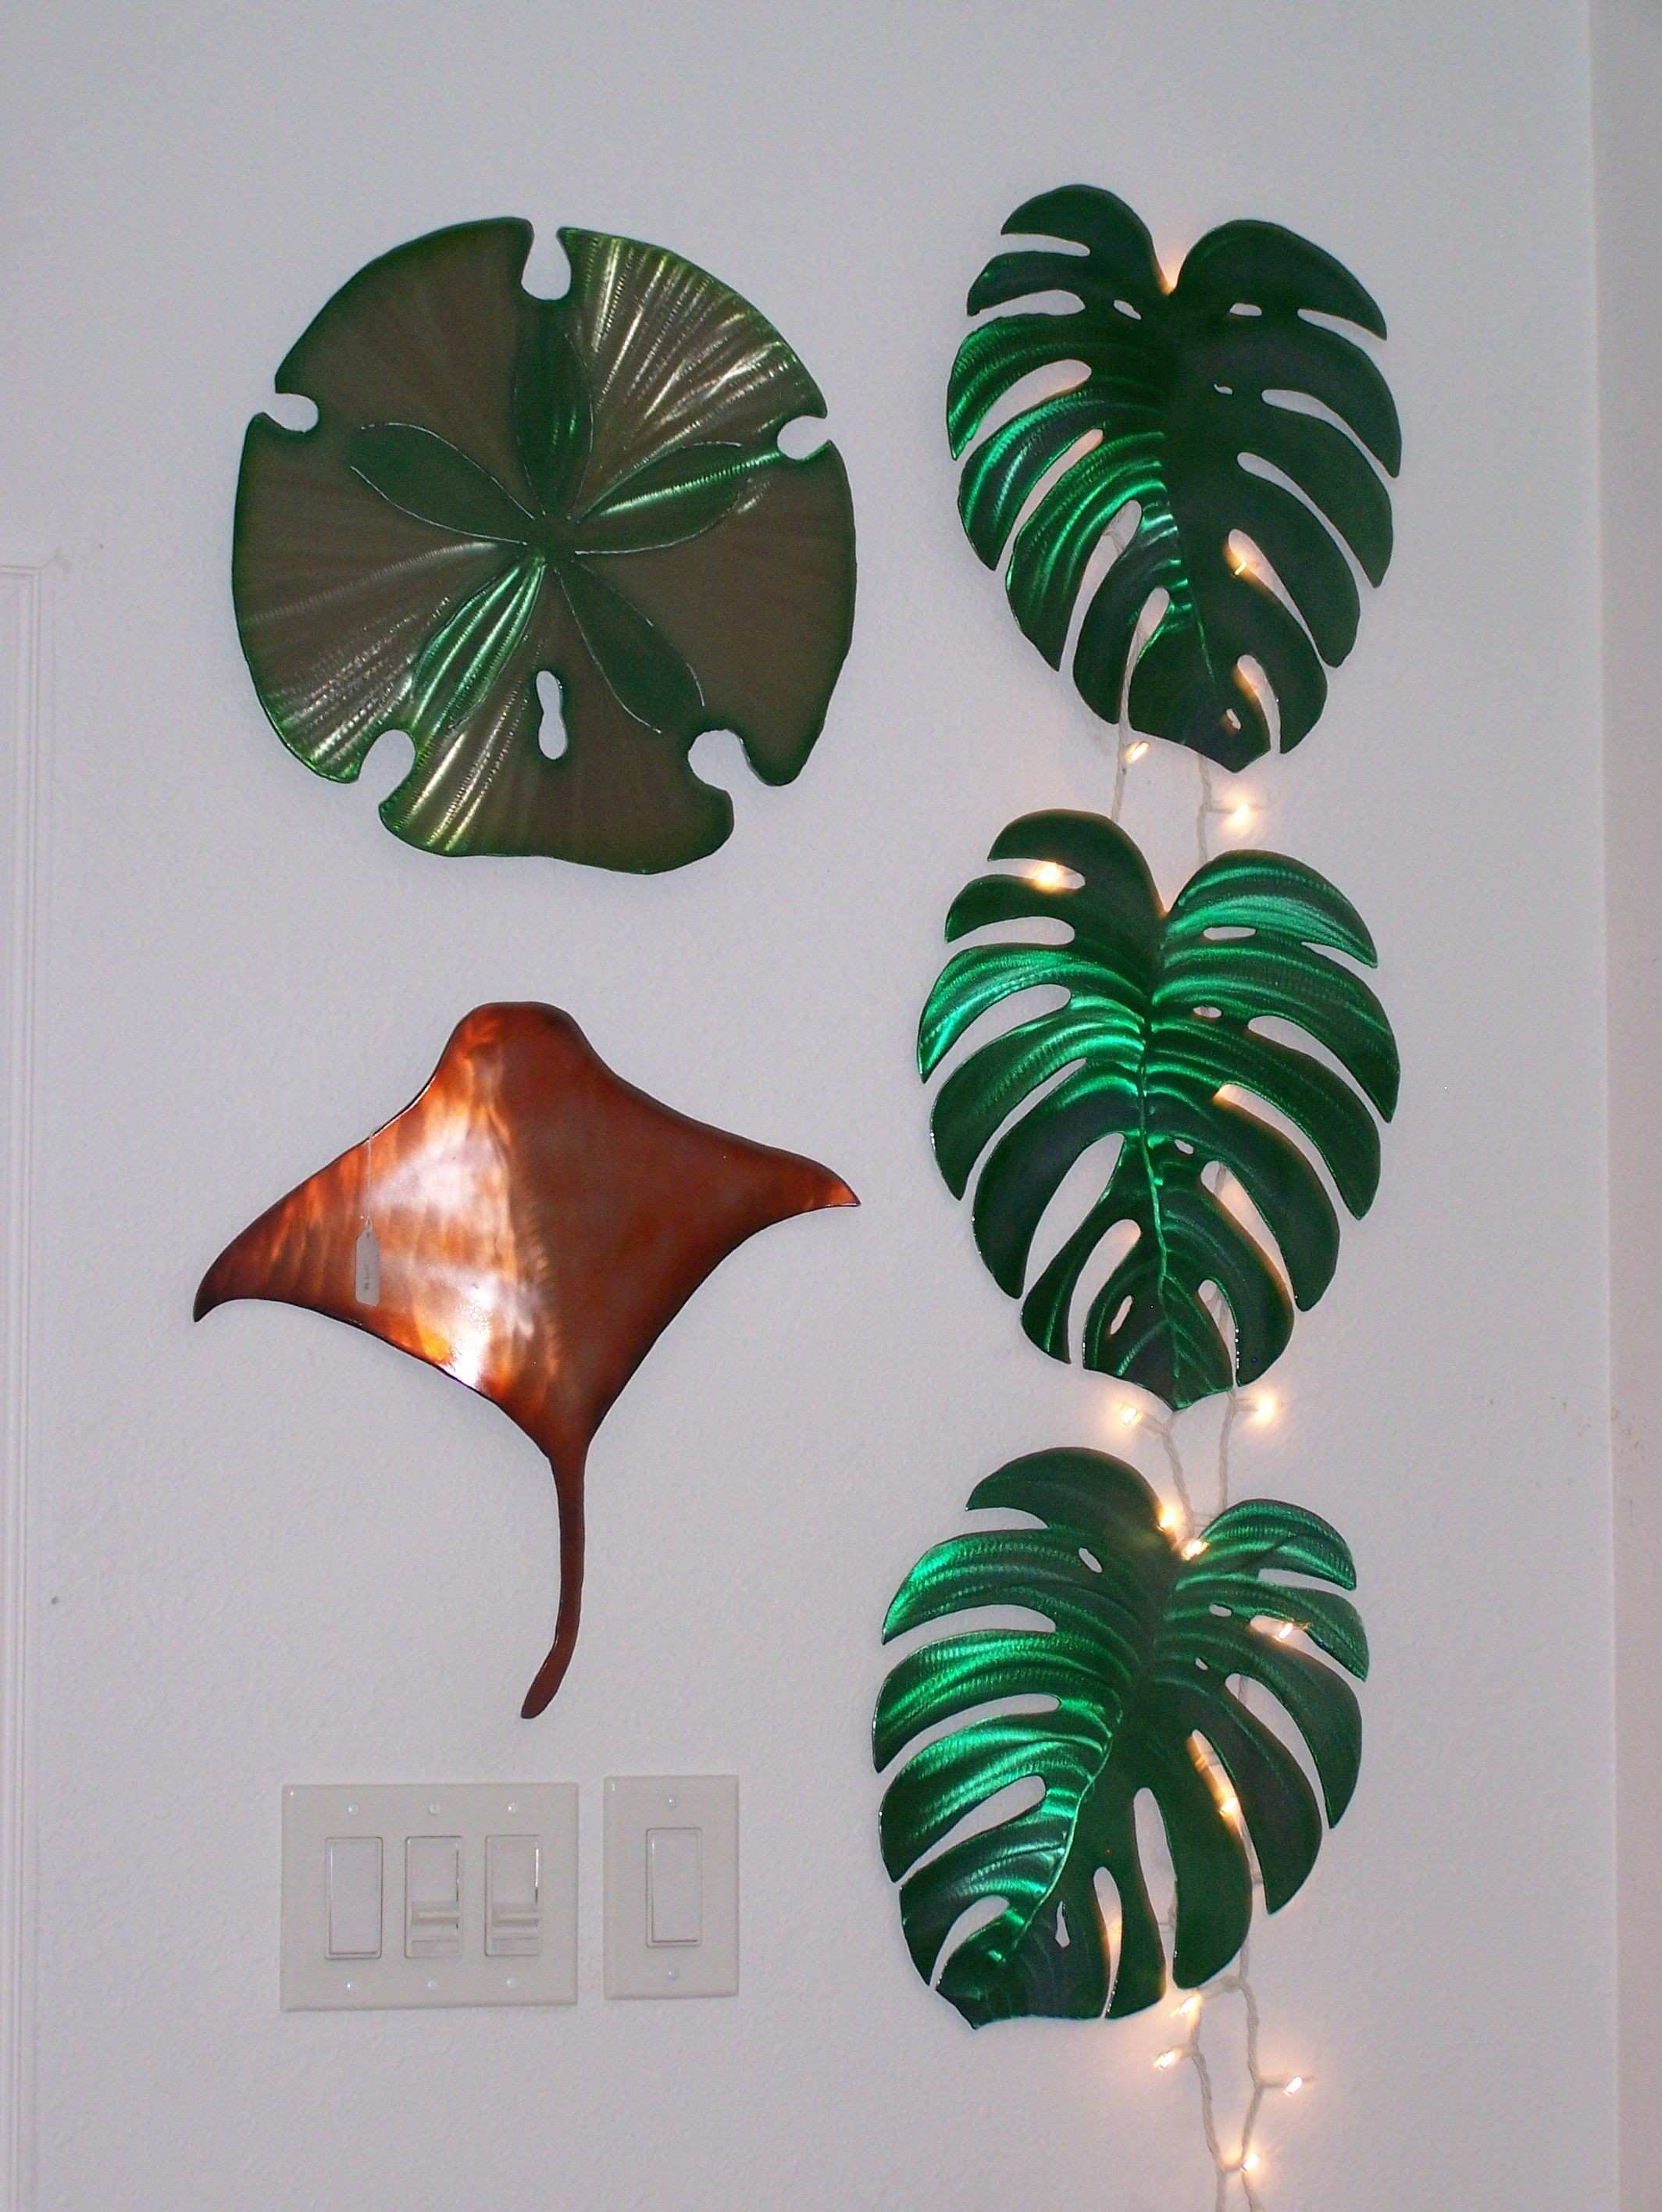 Metal wall art Al moved here from Hawaii and makes sand dollars